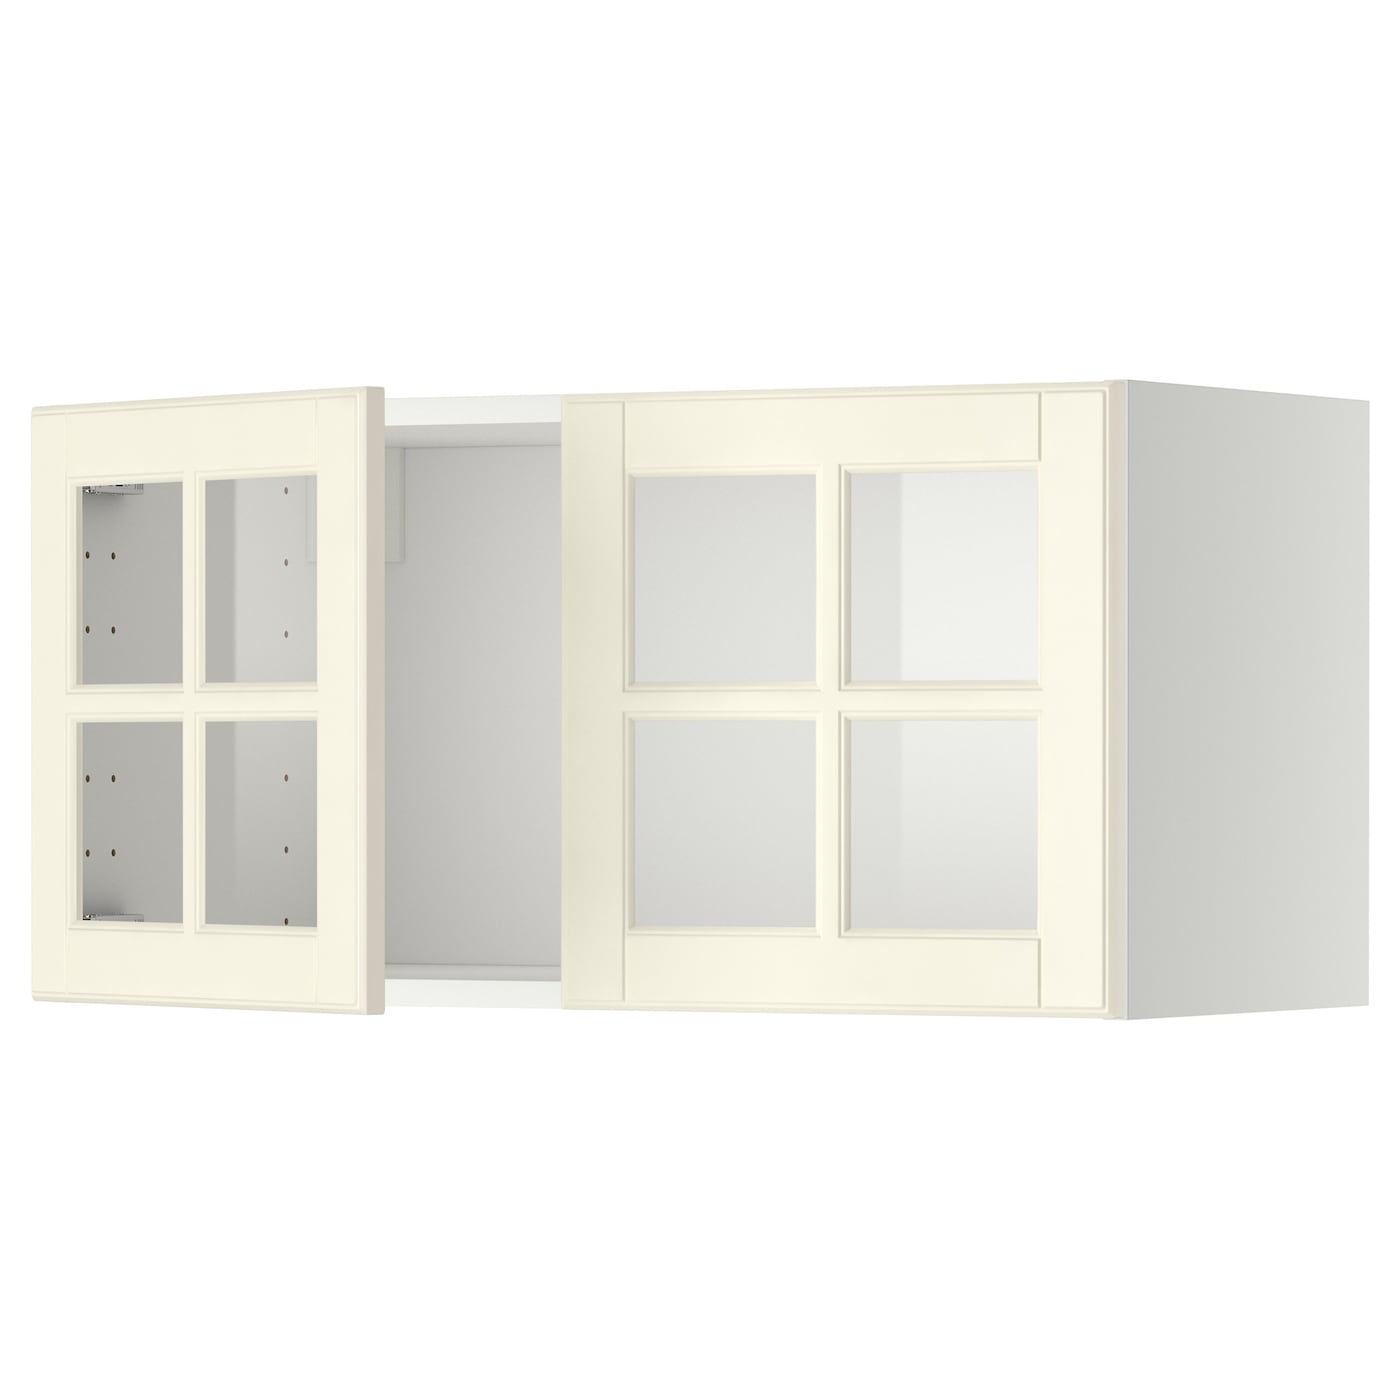 High Quality IKEA METOD Wall Cabinet With 2 Glass Doors Sturdy Frame Construction, 18 Mm  Thick. Part 2